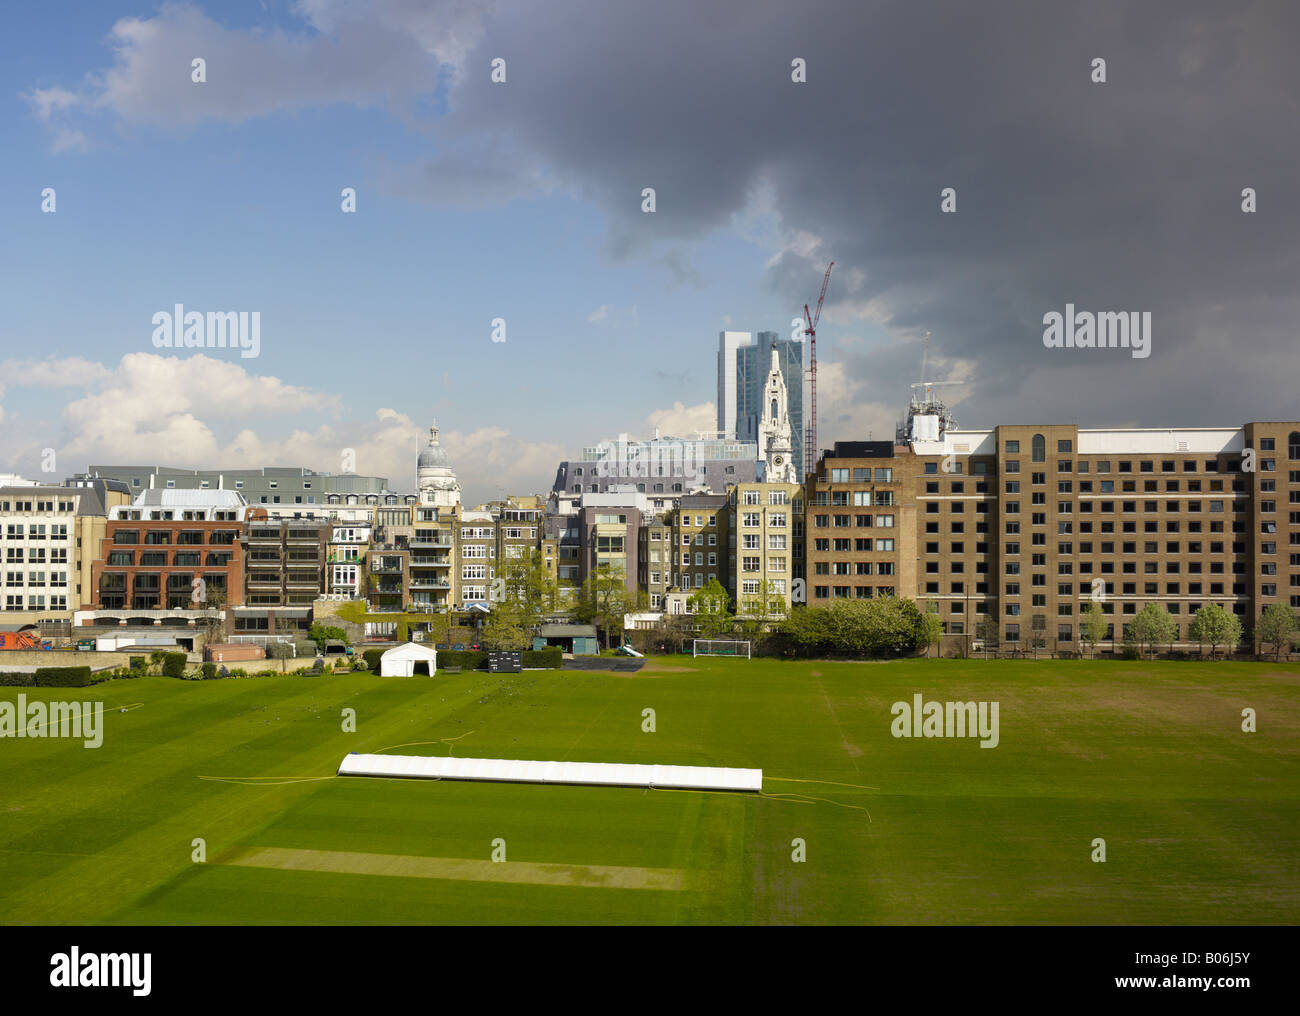 Bunhill Fields City of London showing the inner city green space on which sports are played View looking East - Stock Image